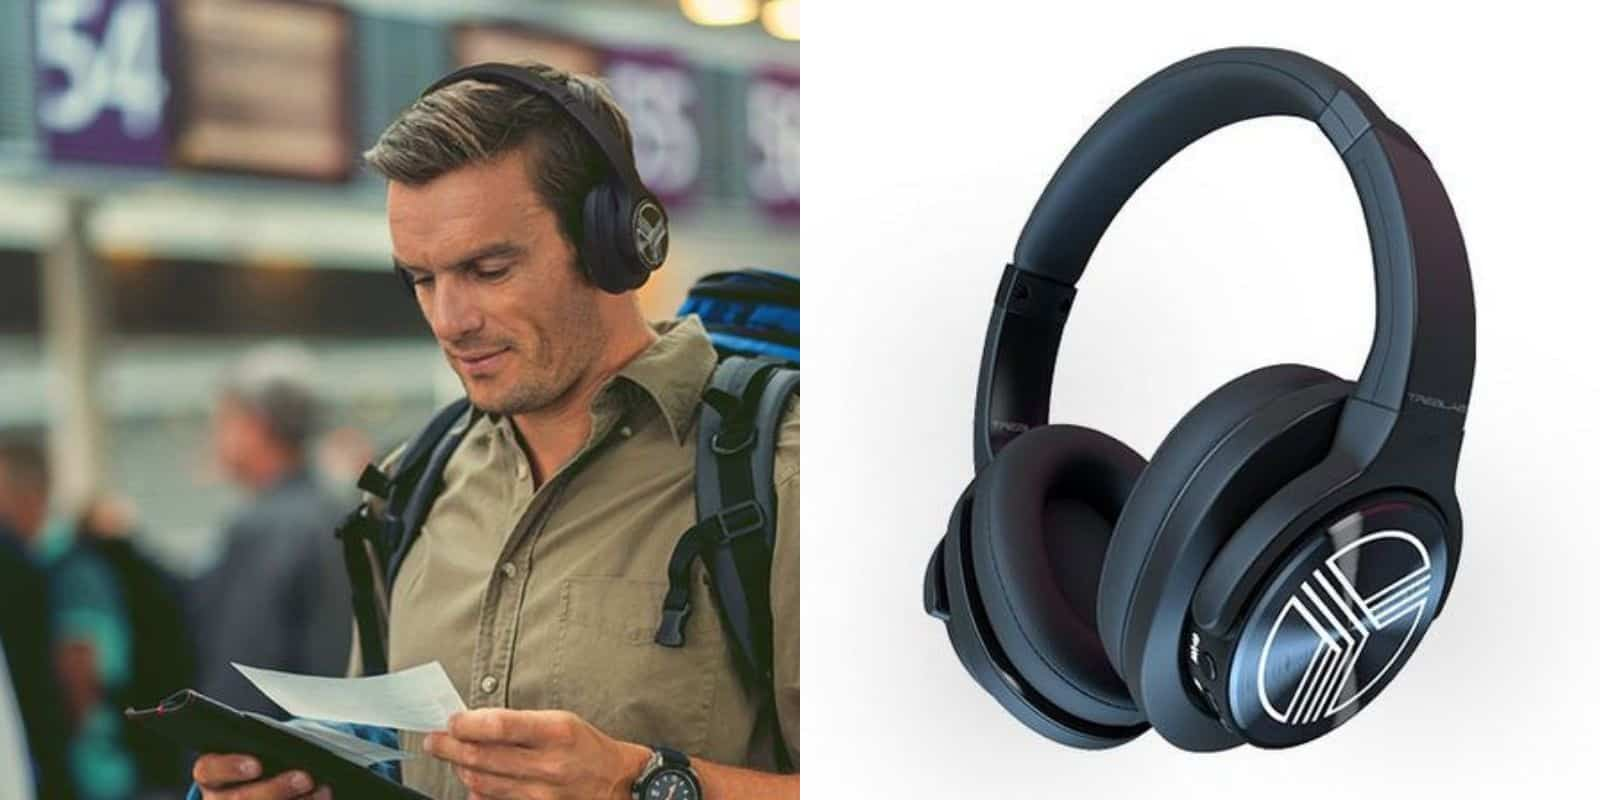 Don't drop hundreds of bucks on a set of headphones when you can spend way less for the same features.